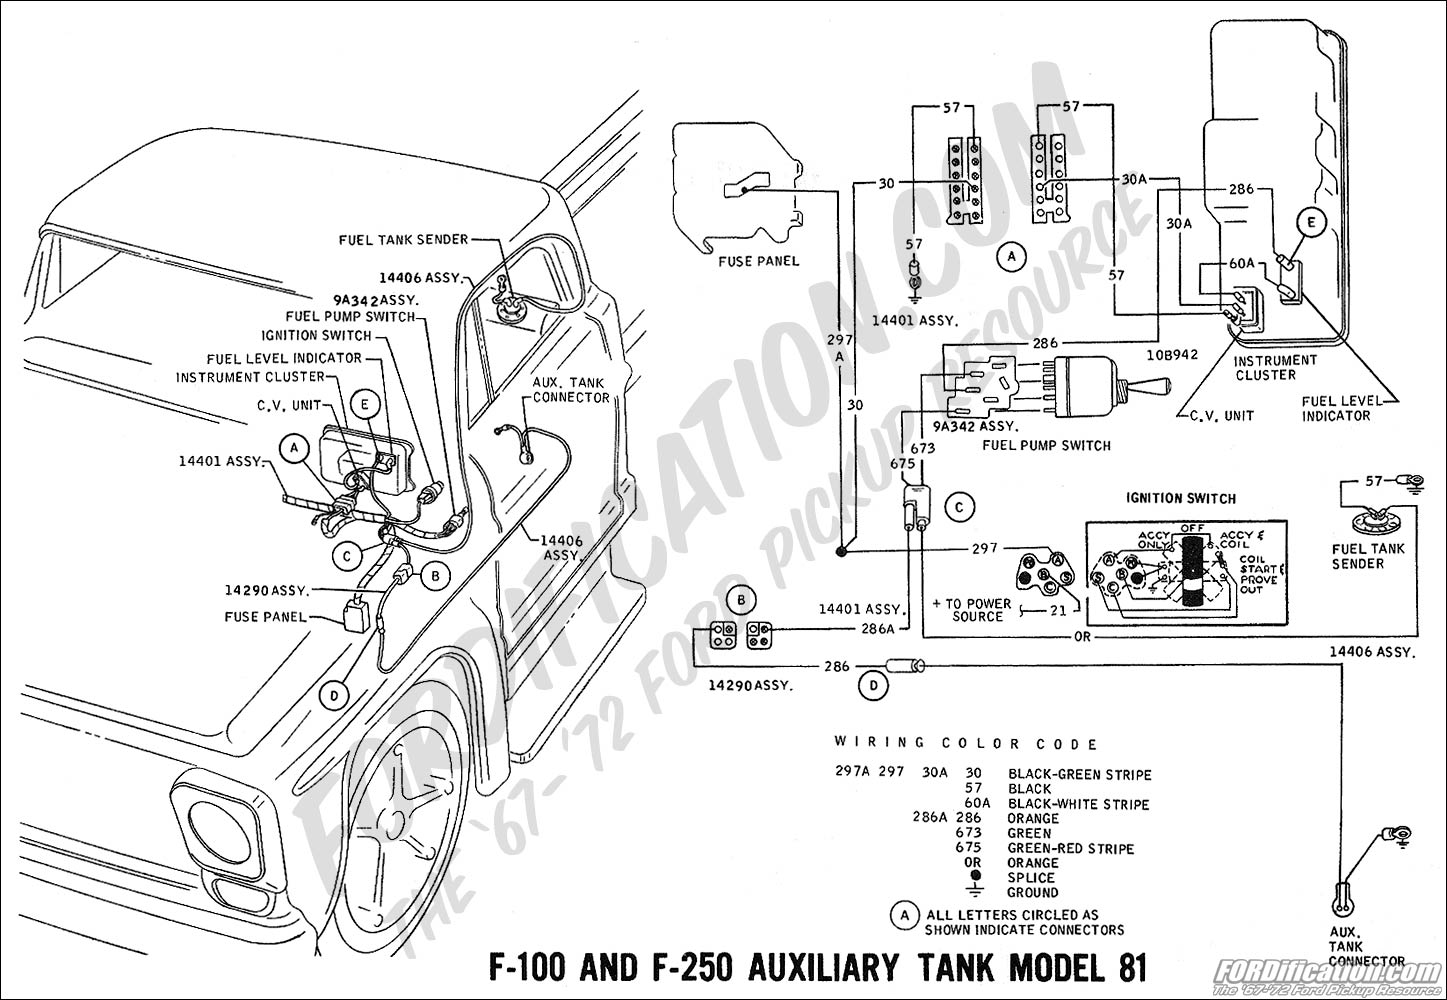 wiring_69aux fuel 69 f100 wiring diagram 1973 ford f100 wiring diagram \u2022 wiring Ford E-350 Fuse Box Diagram at metegol.co